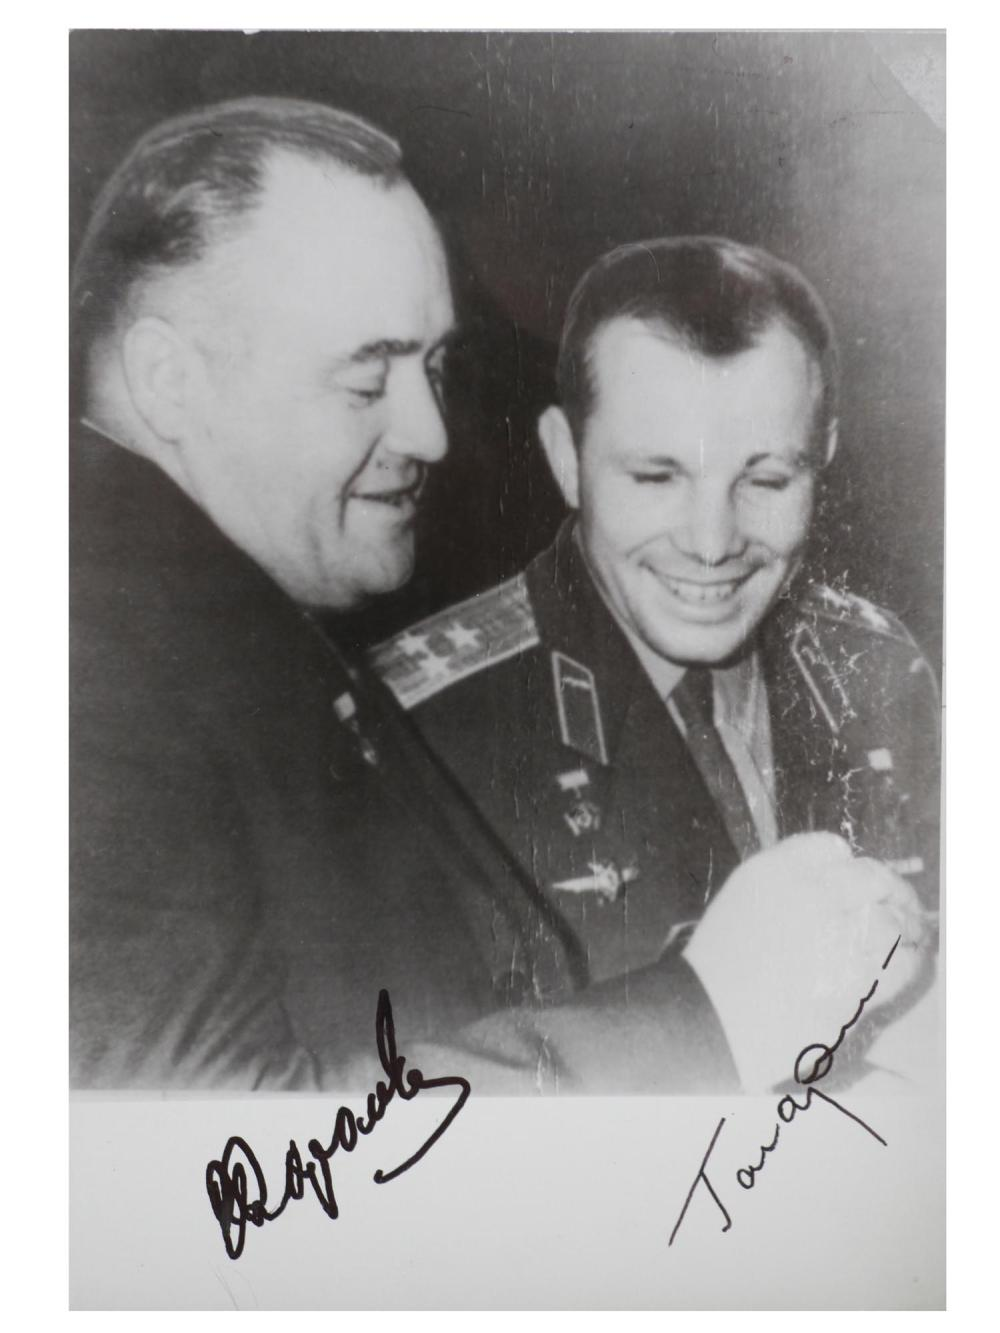 A SOVIET SIGNED PHOTOGRAPH OF KOROLEV AND GAGARIN